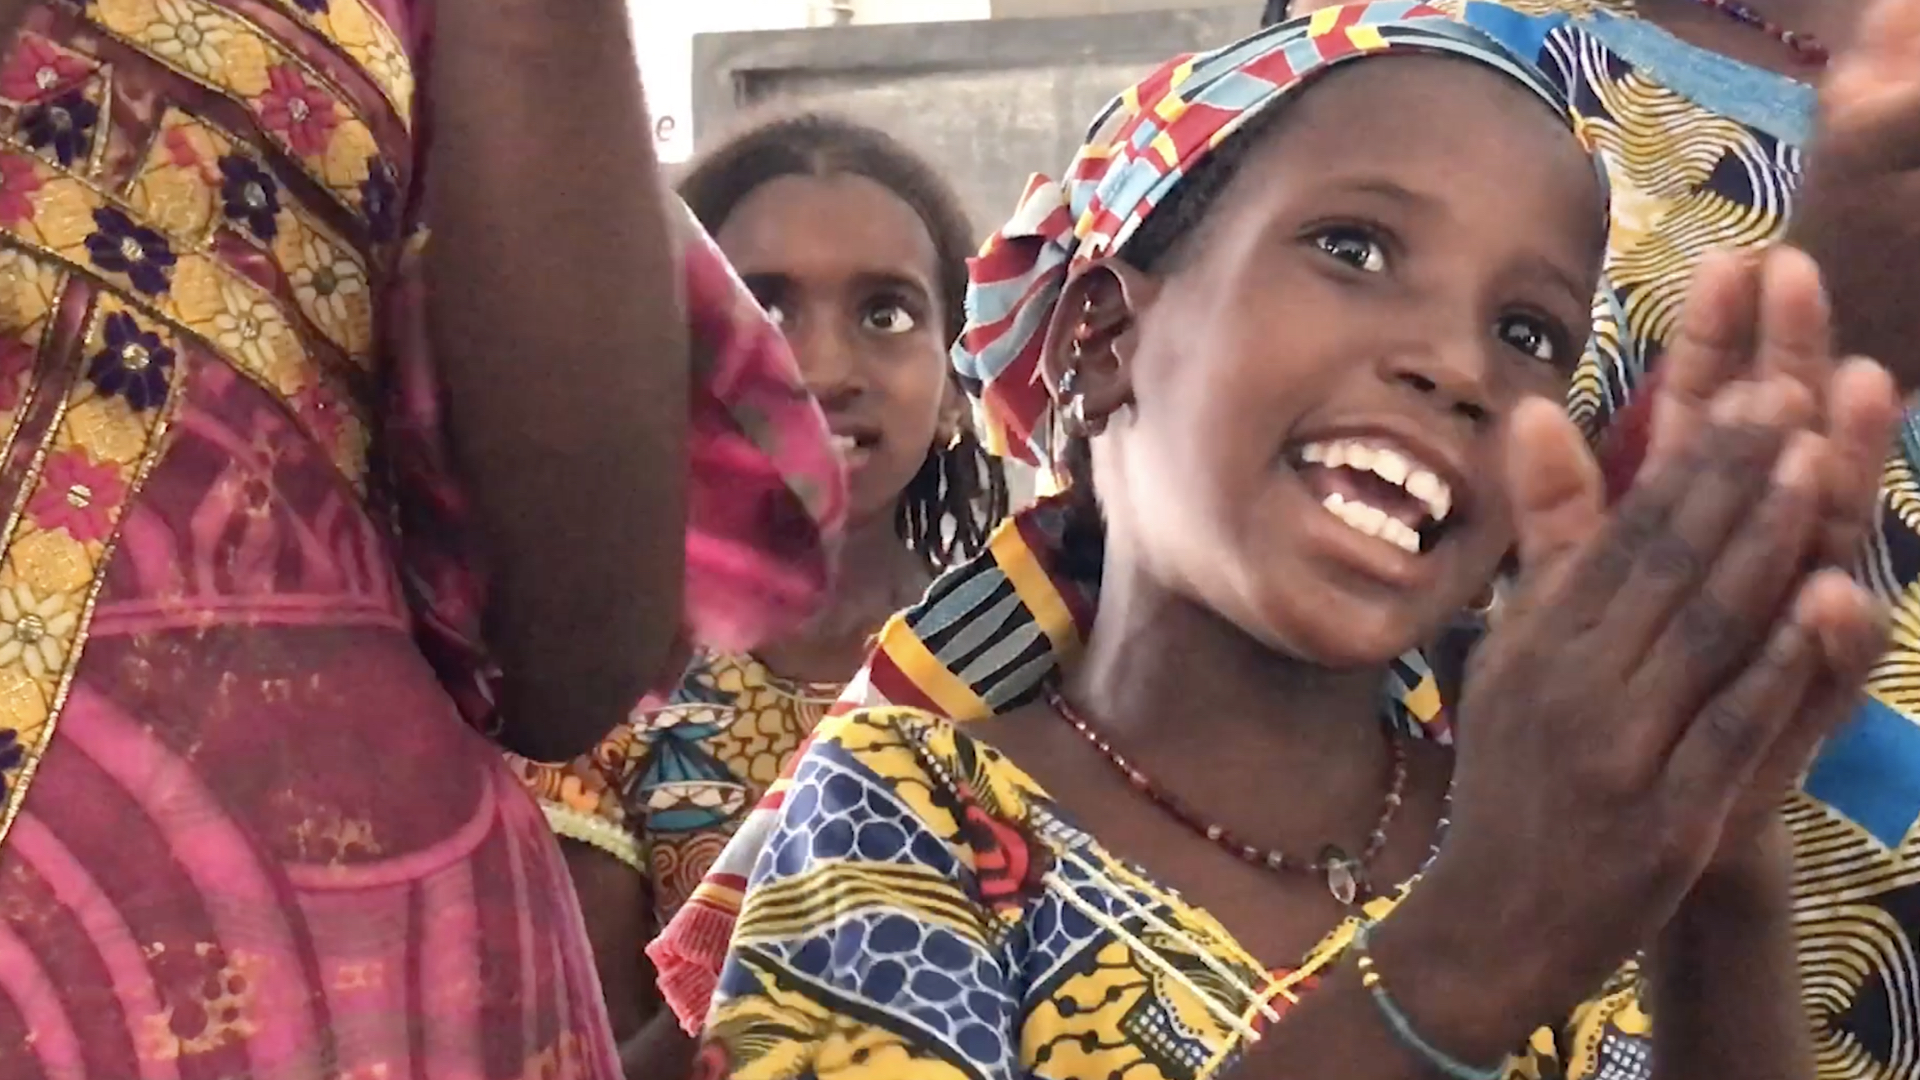 A fulani girls leads a traditional song in a UNICEF tent setup to help the children recover from the trauma of displacement through games and play.